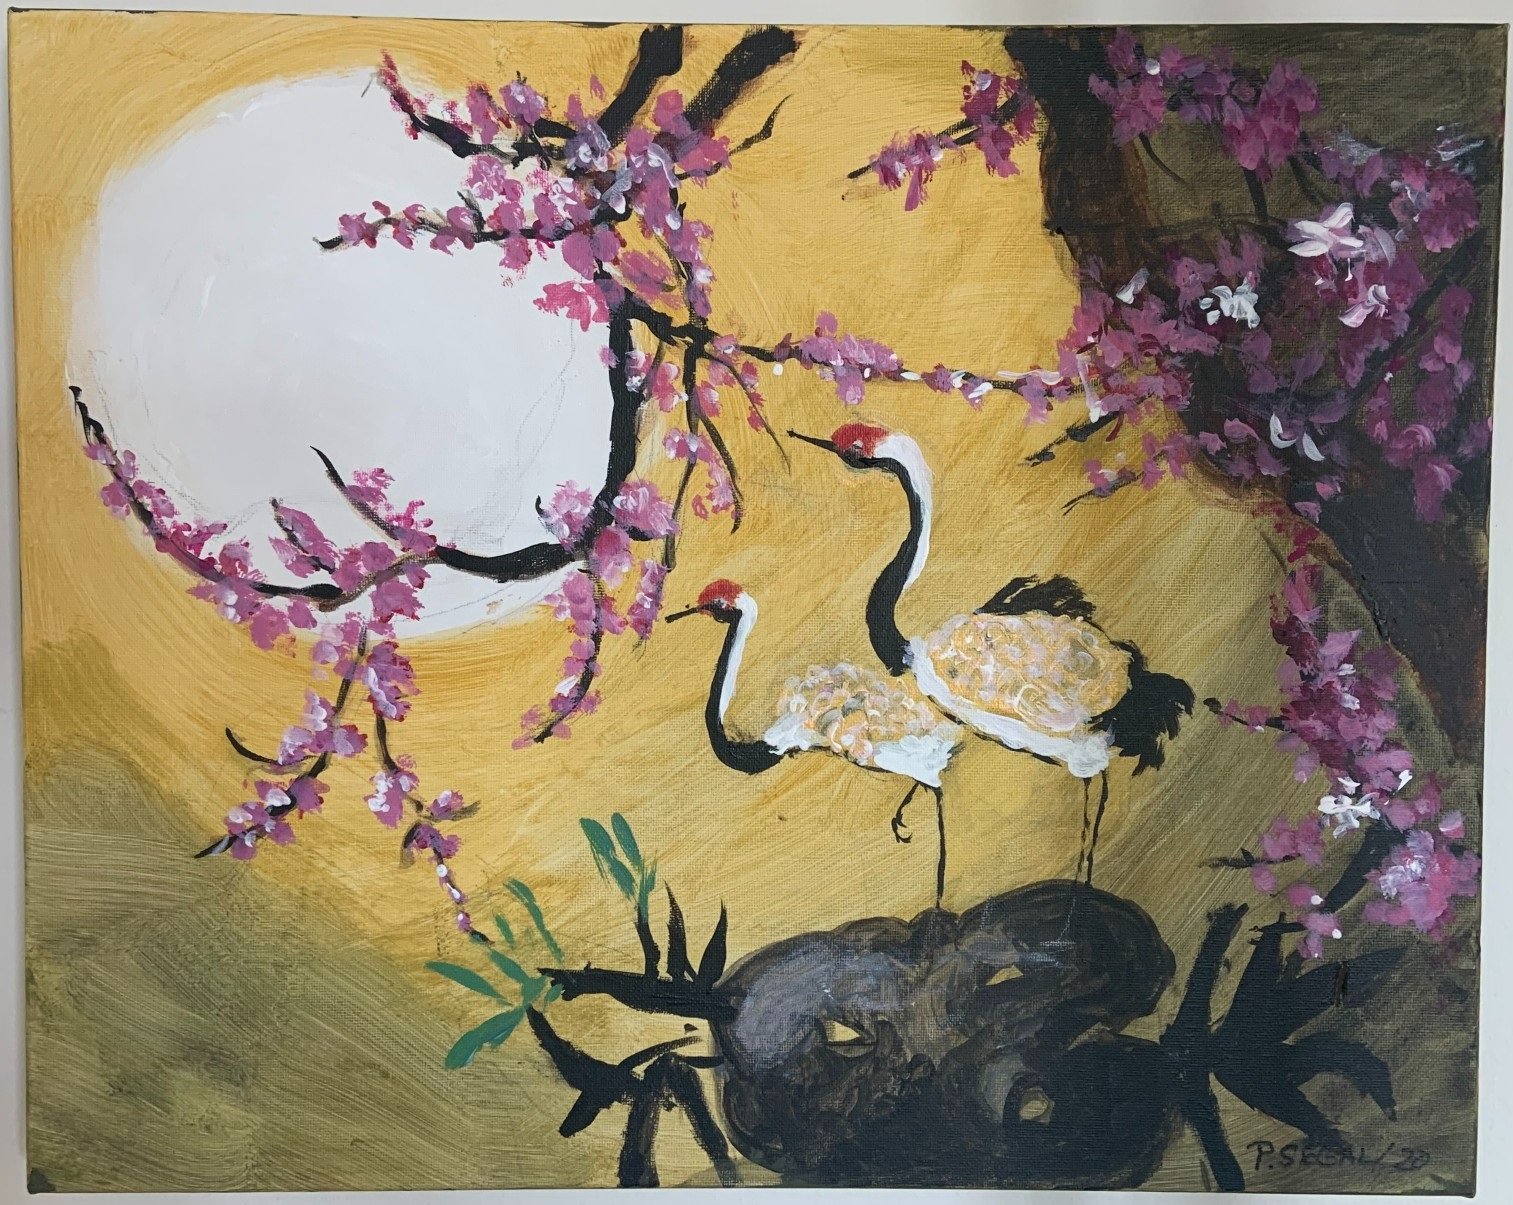 A painting with a gold background showing two red and white birds looking at a moon framed by pink cherry blossom flowers